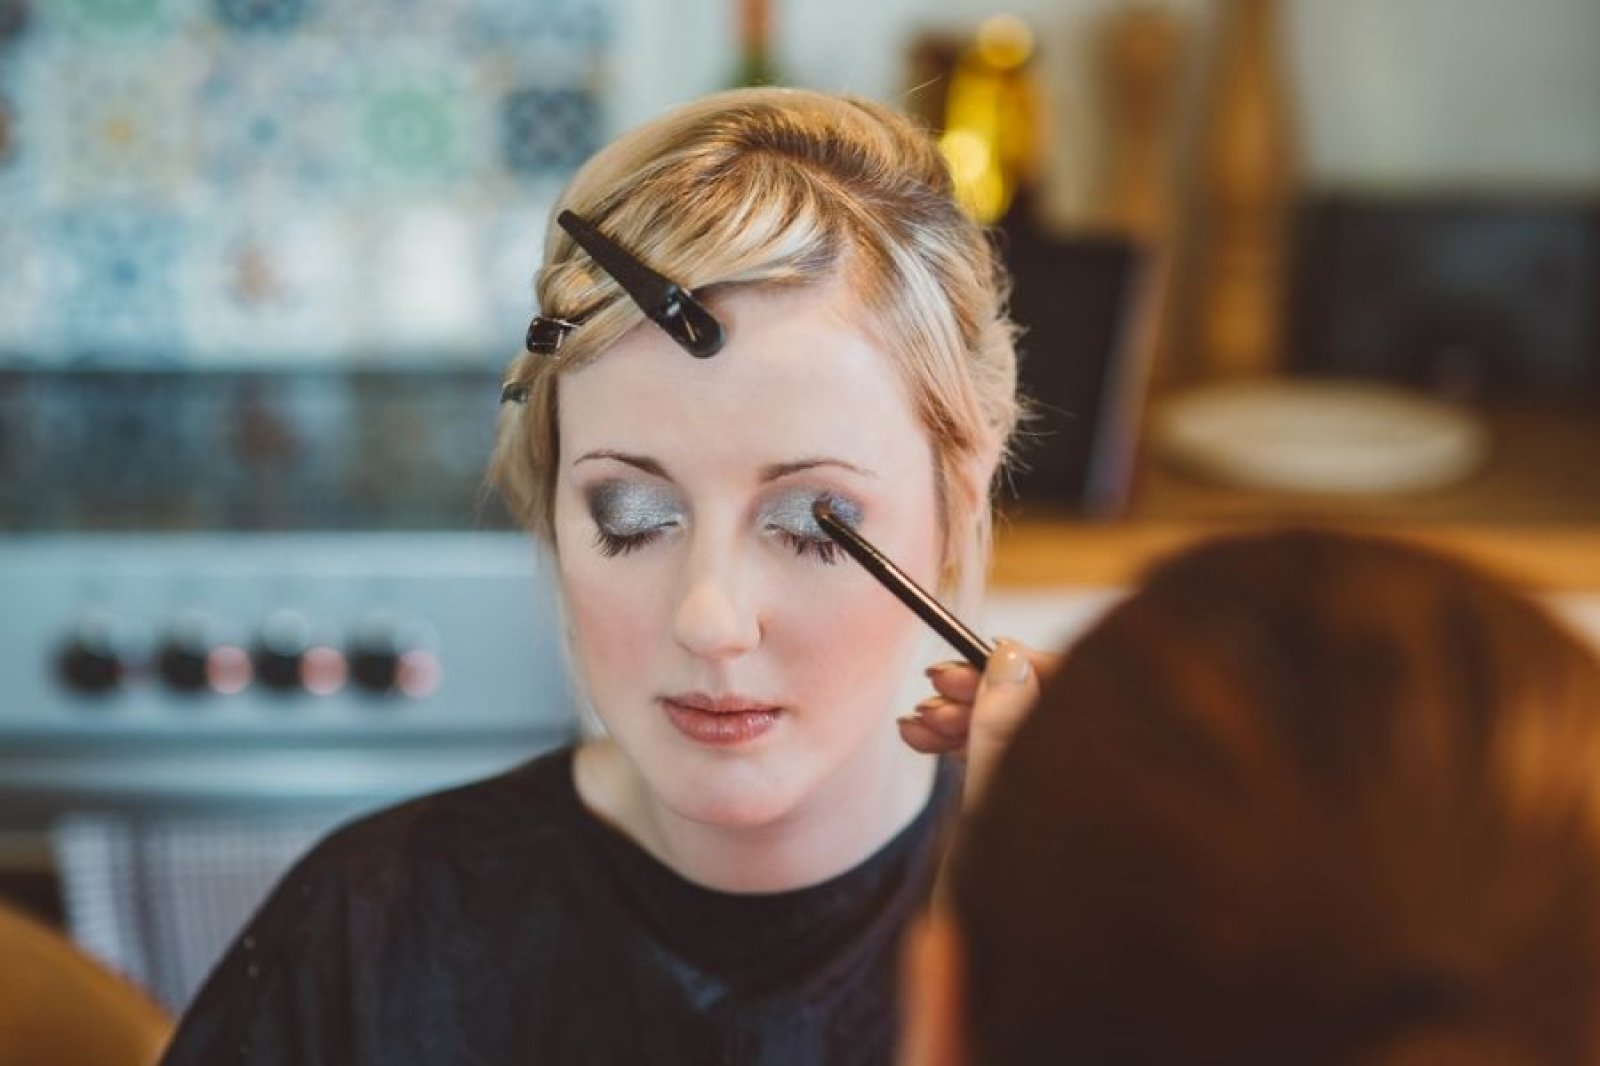 ms moo makeup, makeup artist nottingham, wedding makeup tips